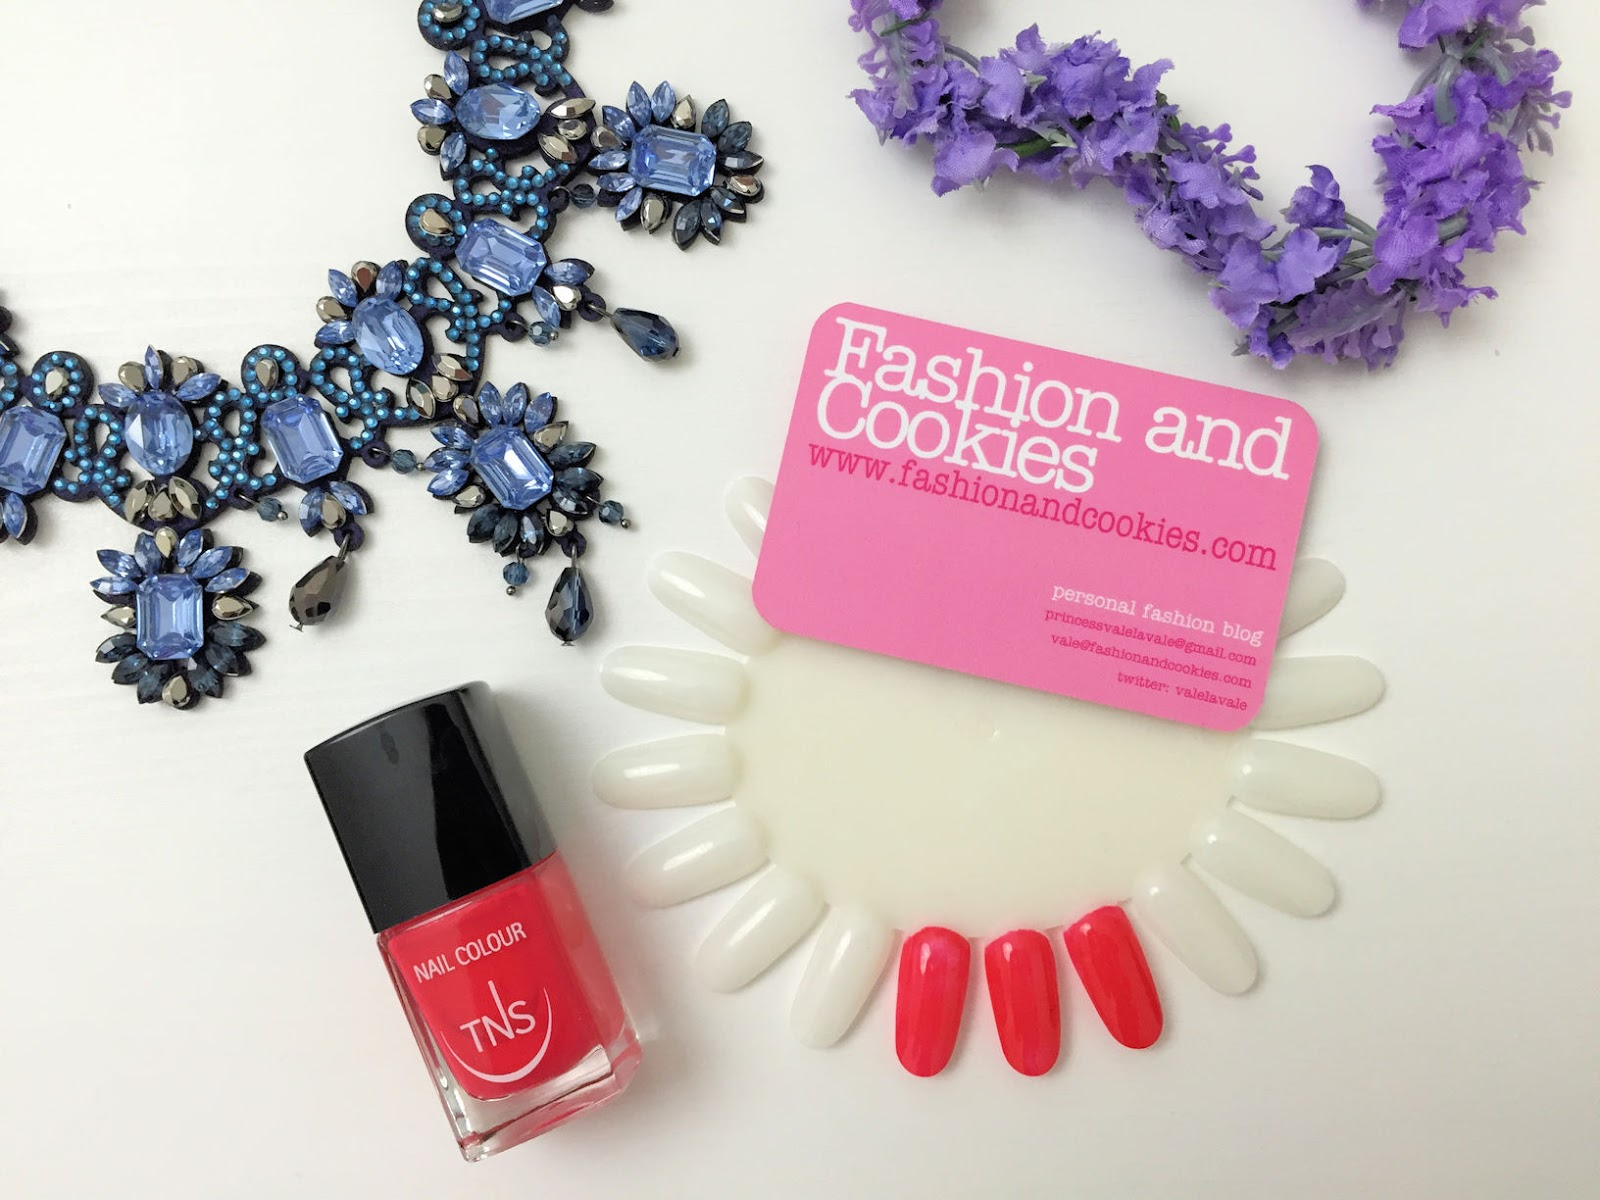 TNS Cosmetics Fashion Week nail polish on Fashion and Cookies beauty blogger, beauty blog